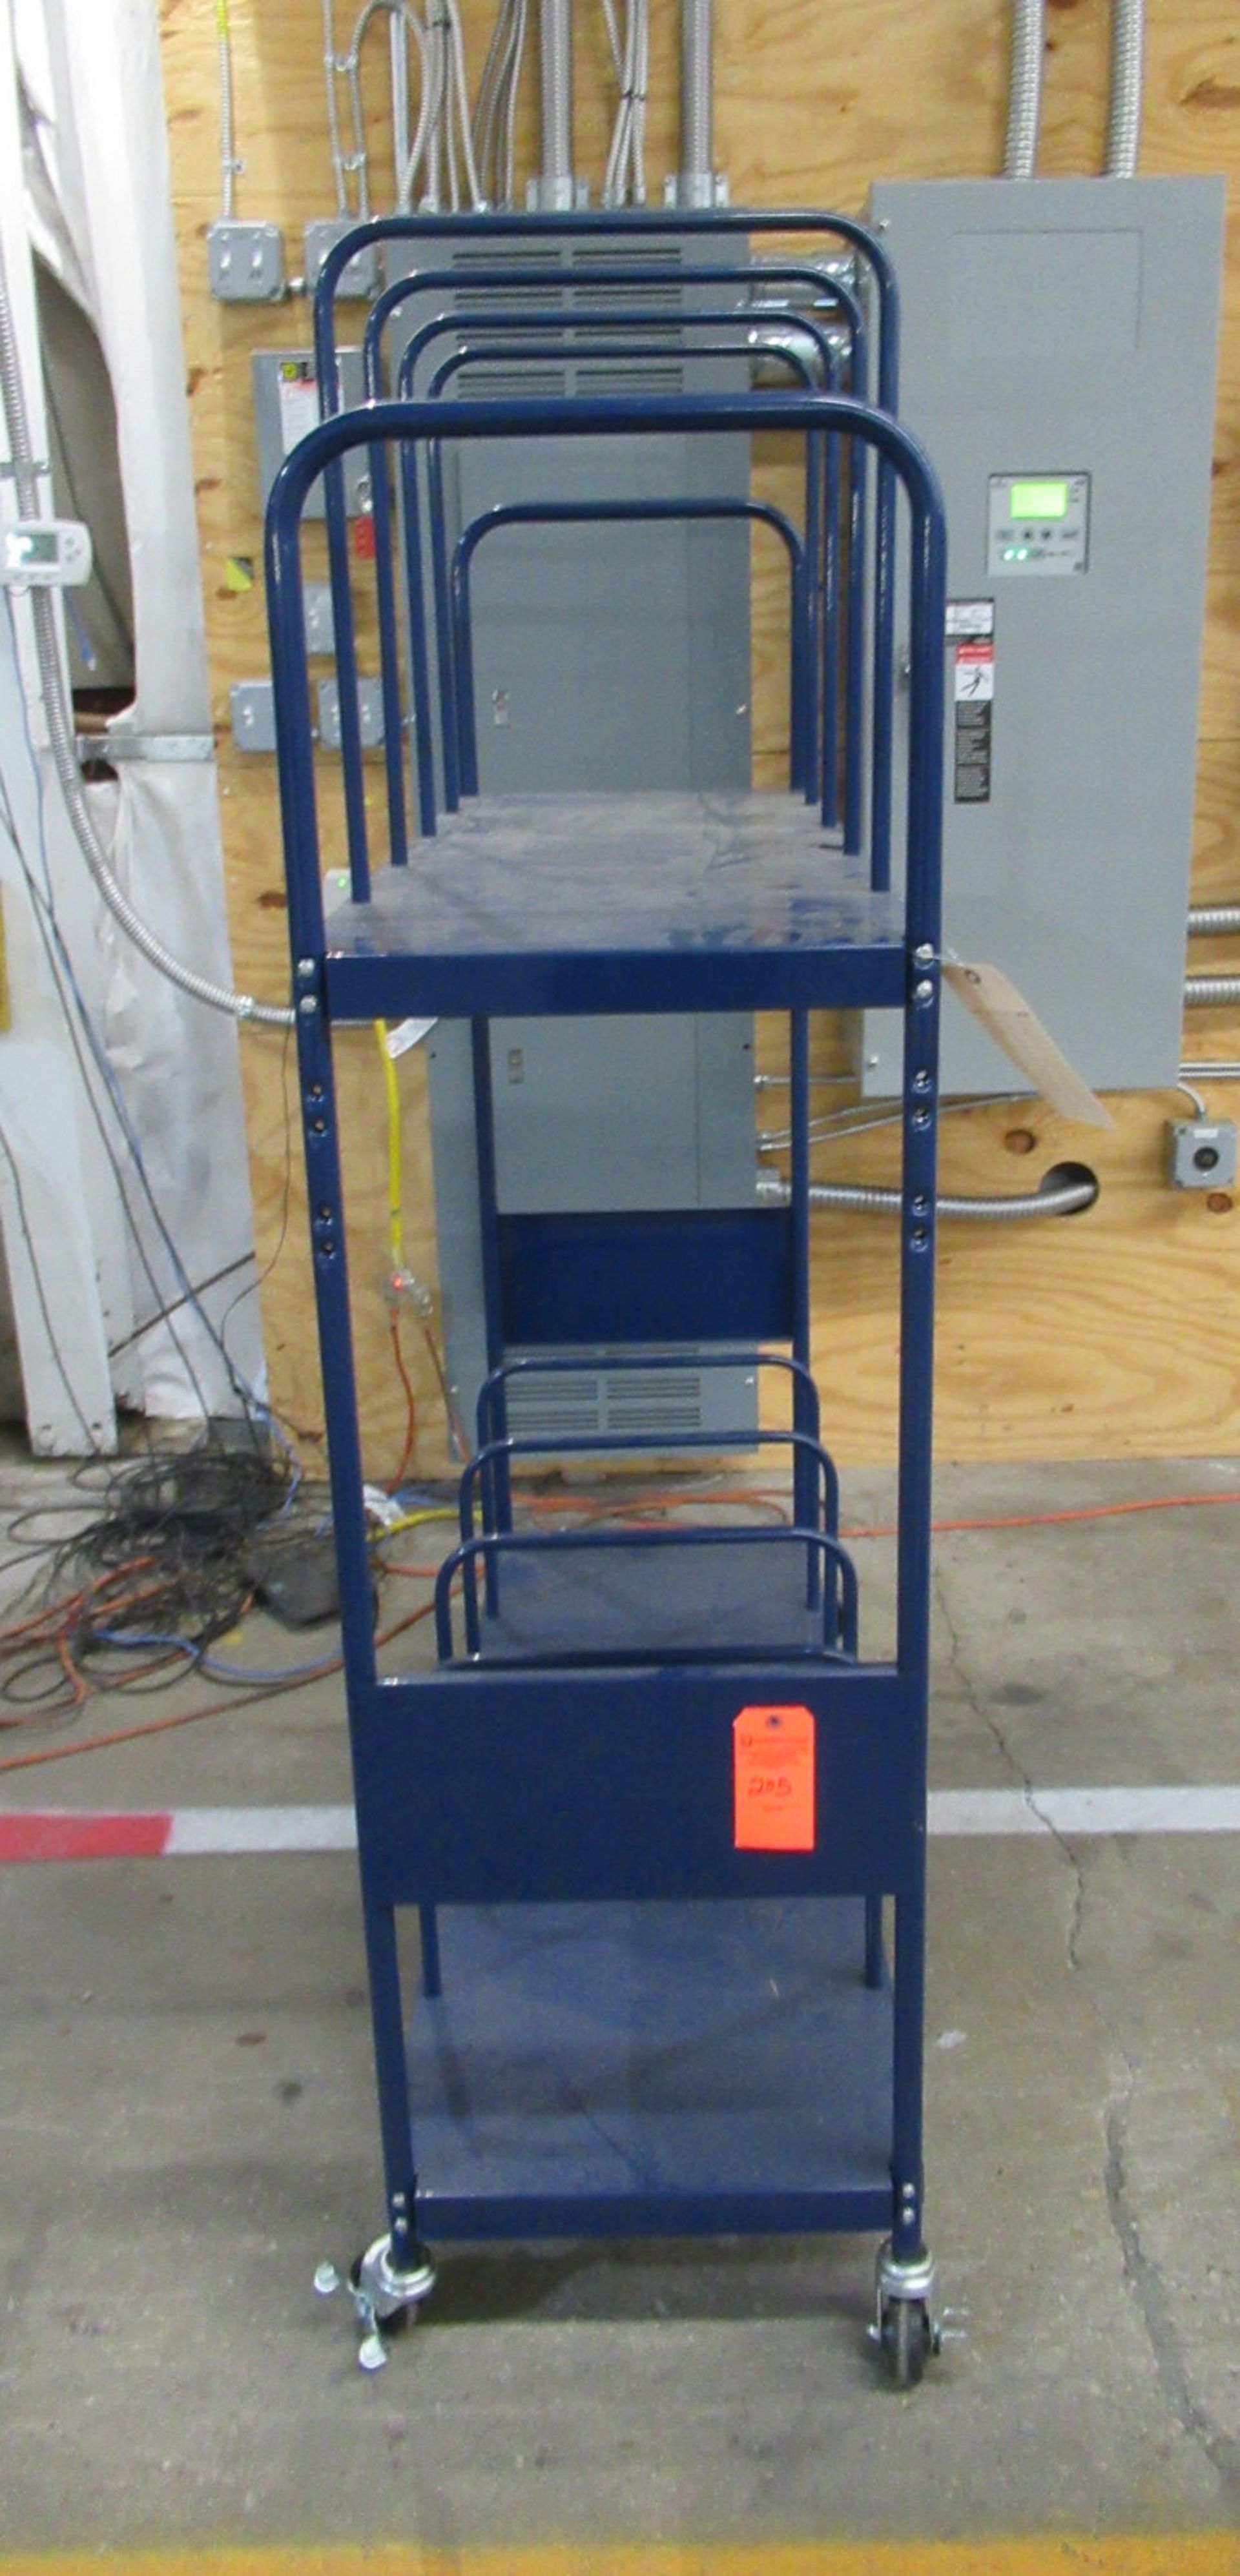 "Lot 205 - Blue Steel Shipping Cart 18"" W x 51"" L x 67"" H"